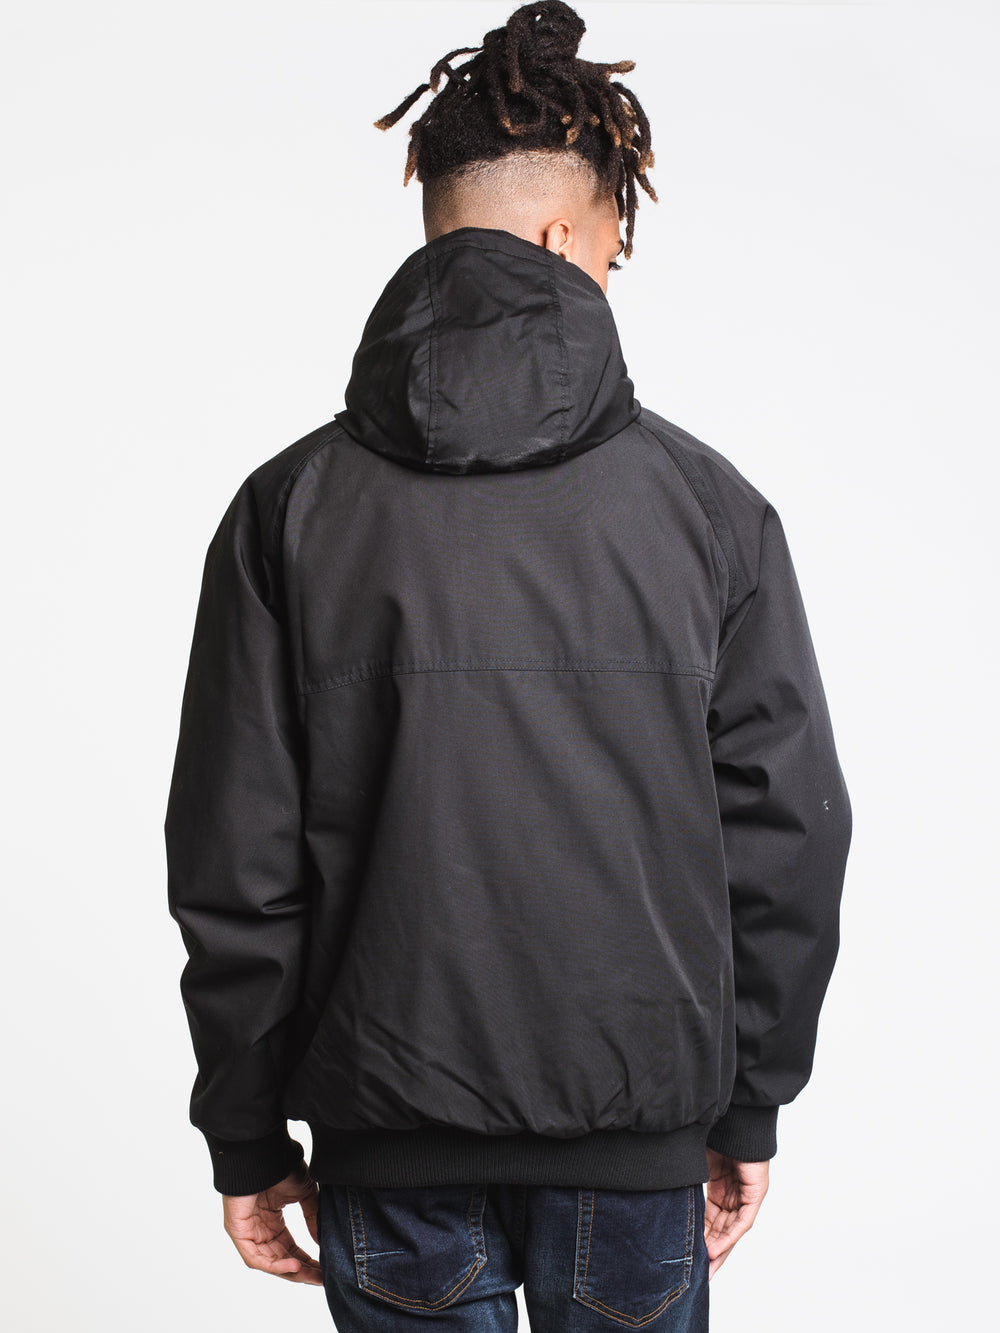 MENS HERNAN 5K JACKET - BLK